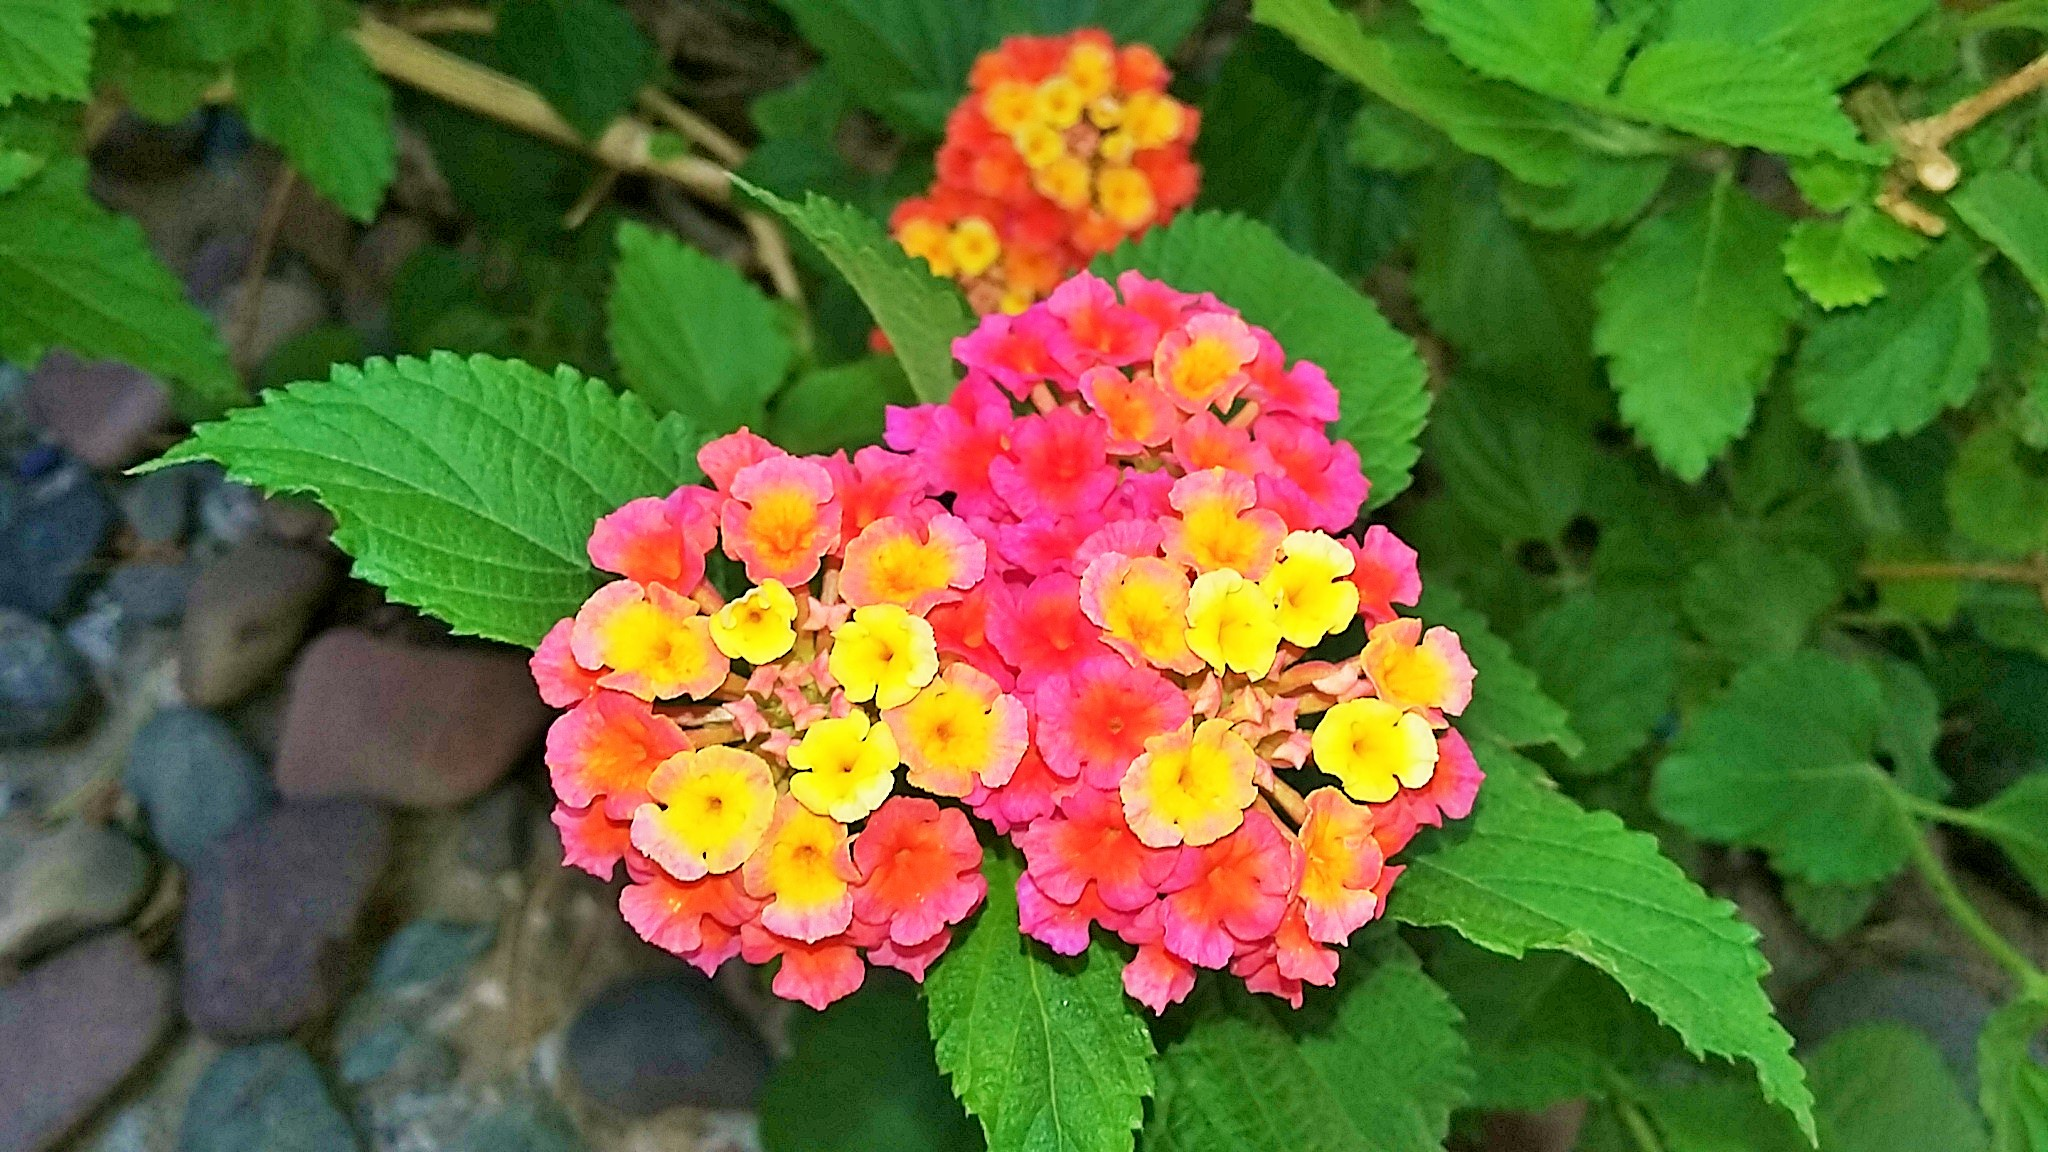 Lantana Flowers of Arizona